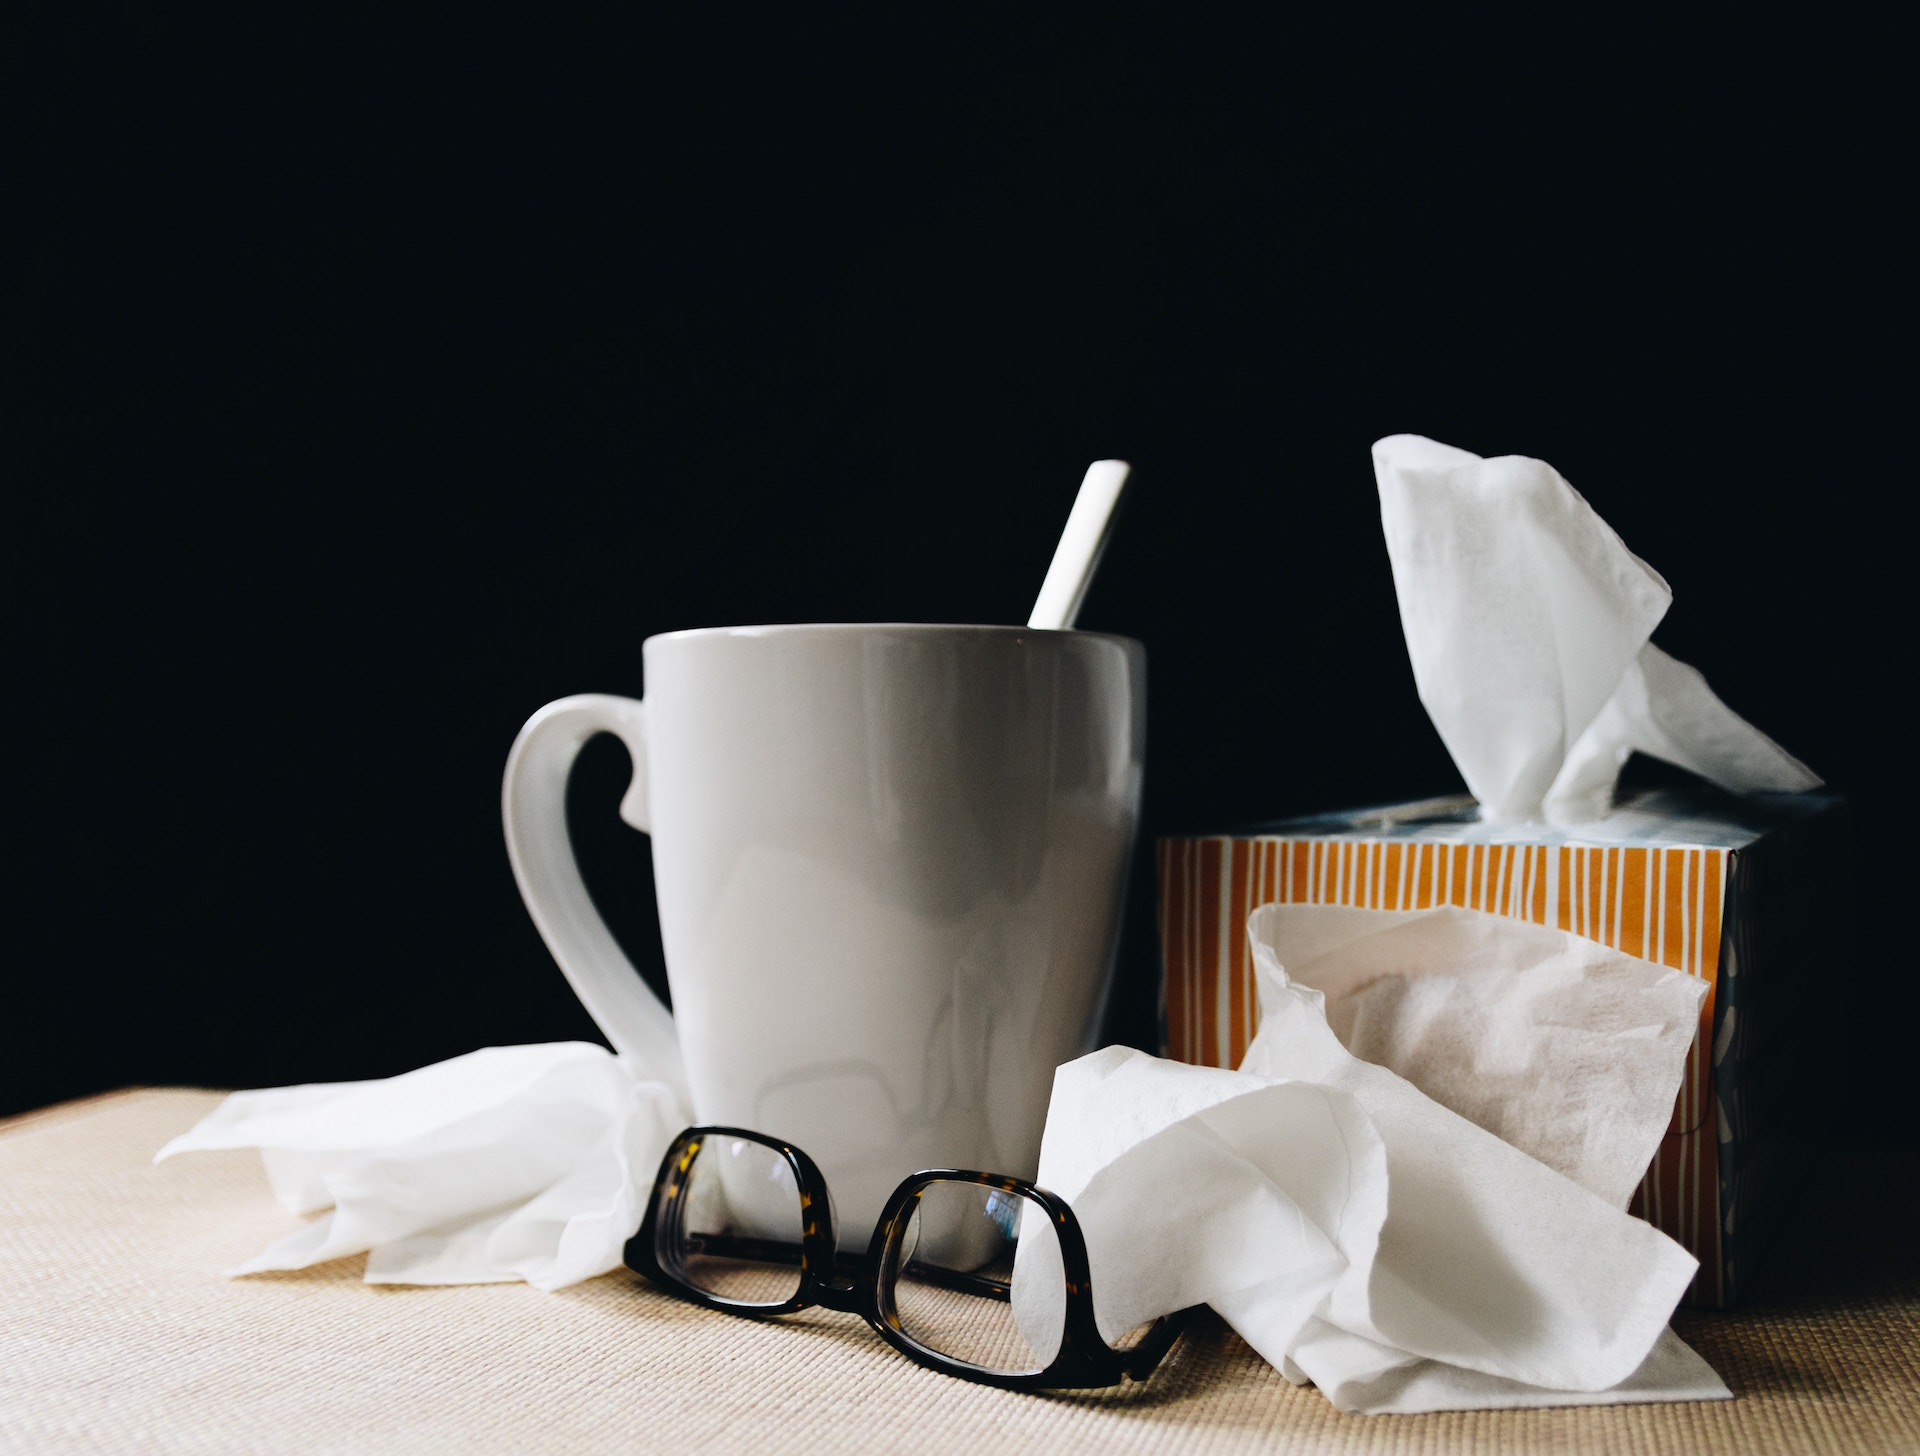 What to do if you get sick